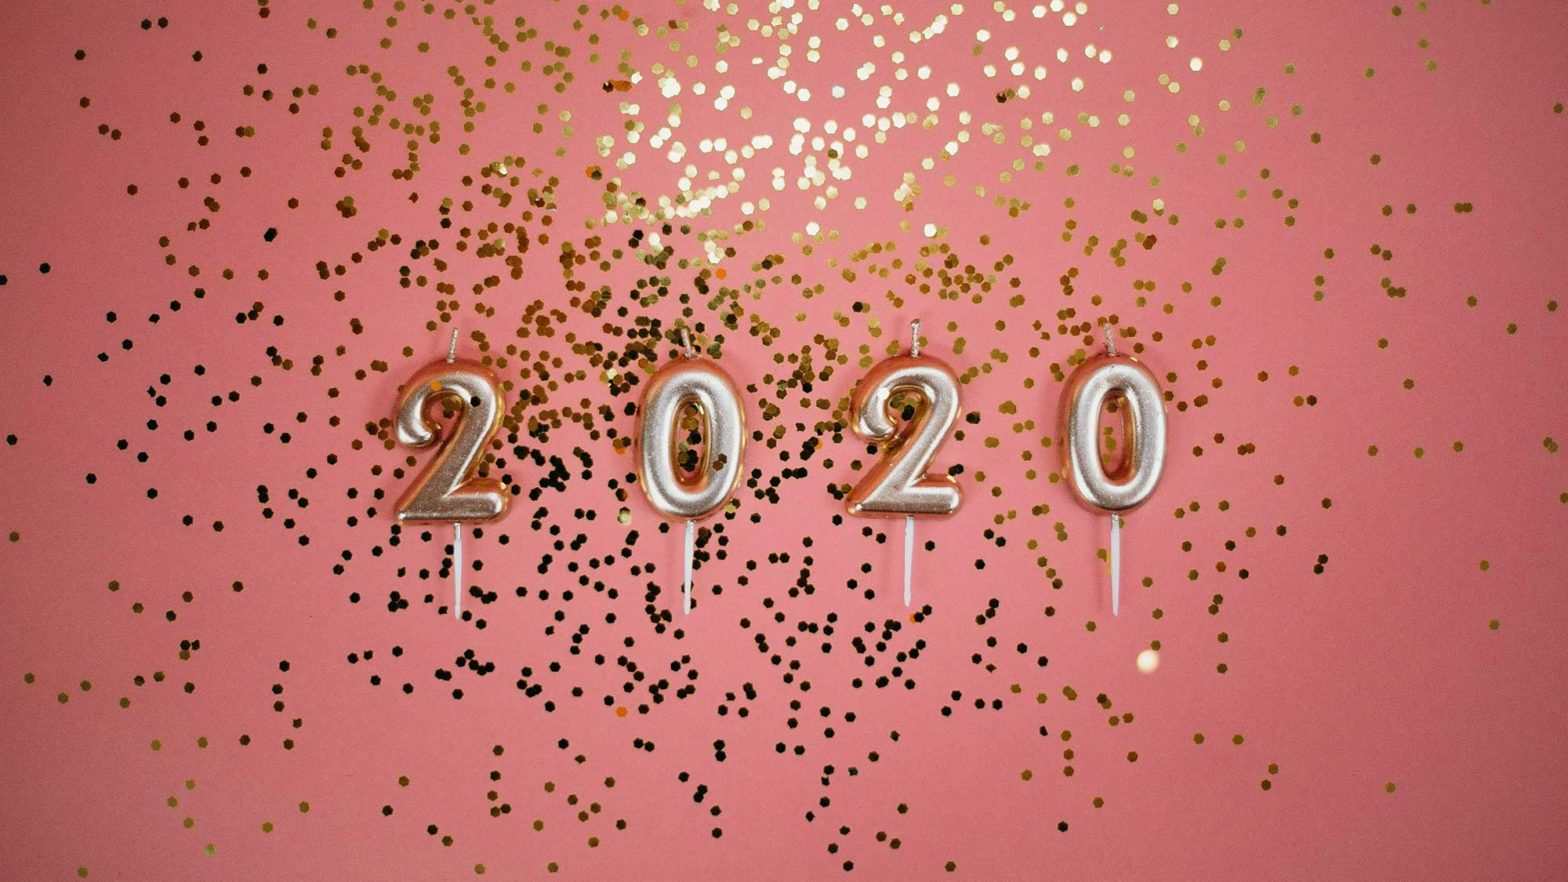 Mikeshouts Wishes Everyone A Happy 2020!